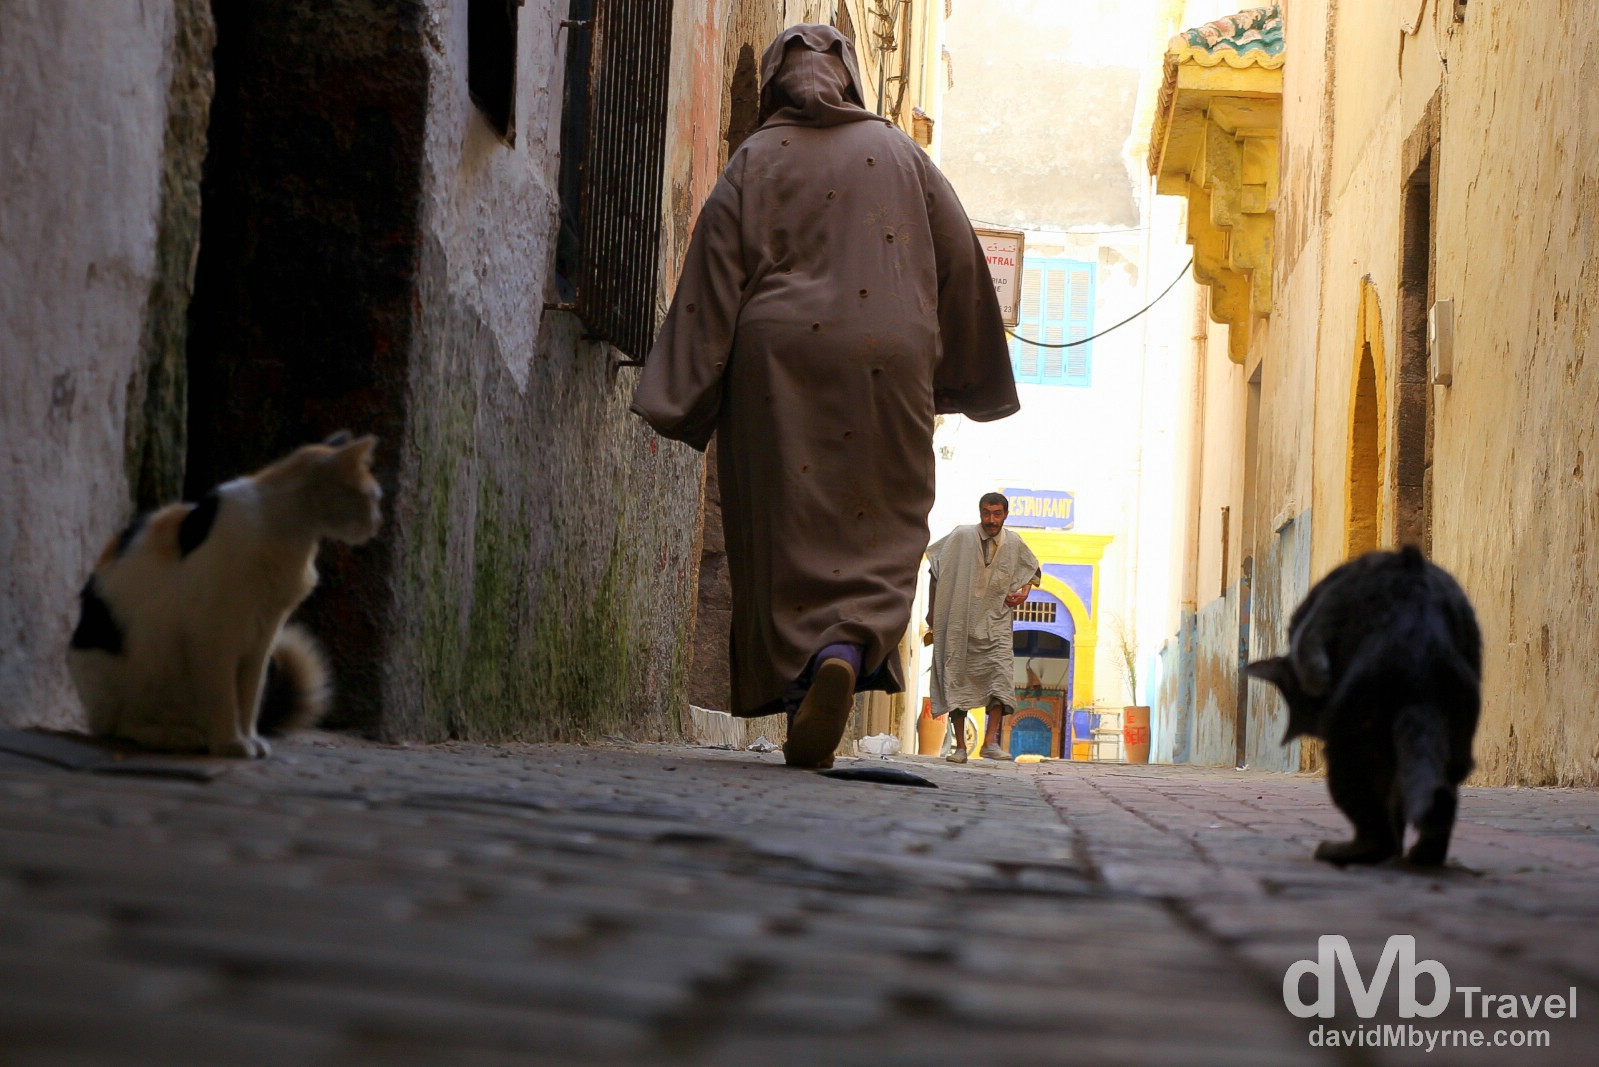 The medina in Essaouira, Morocco. May 4th, 2014.